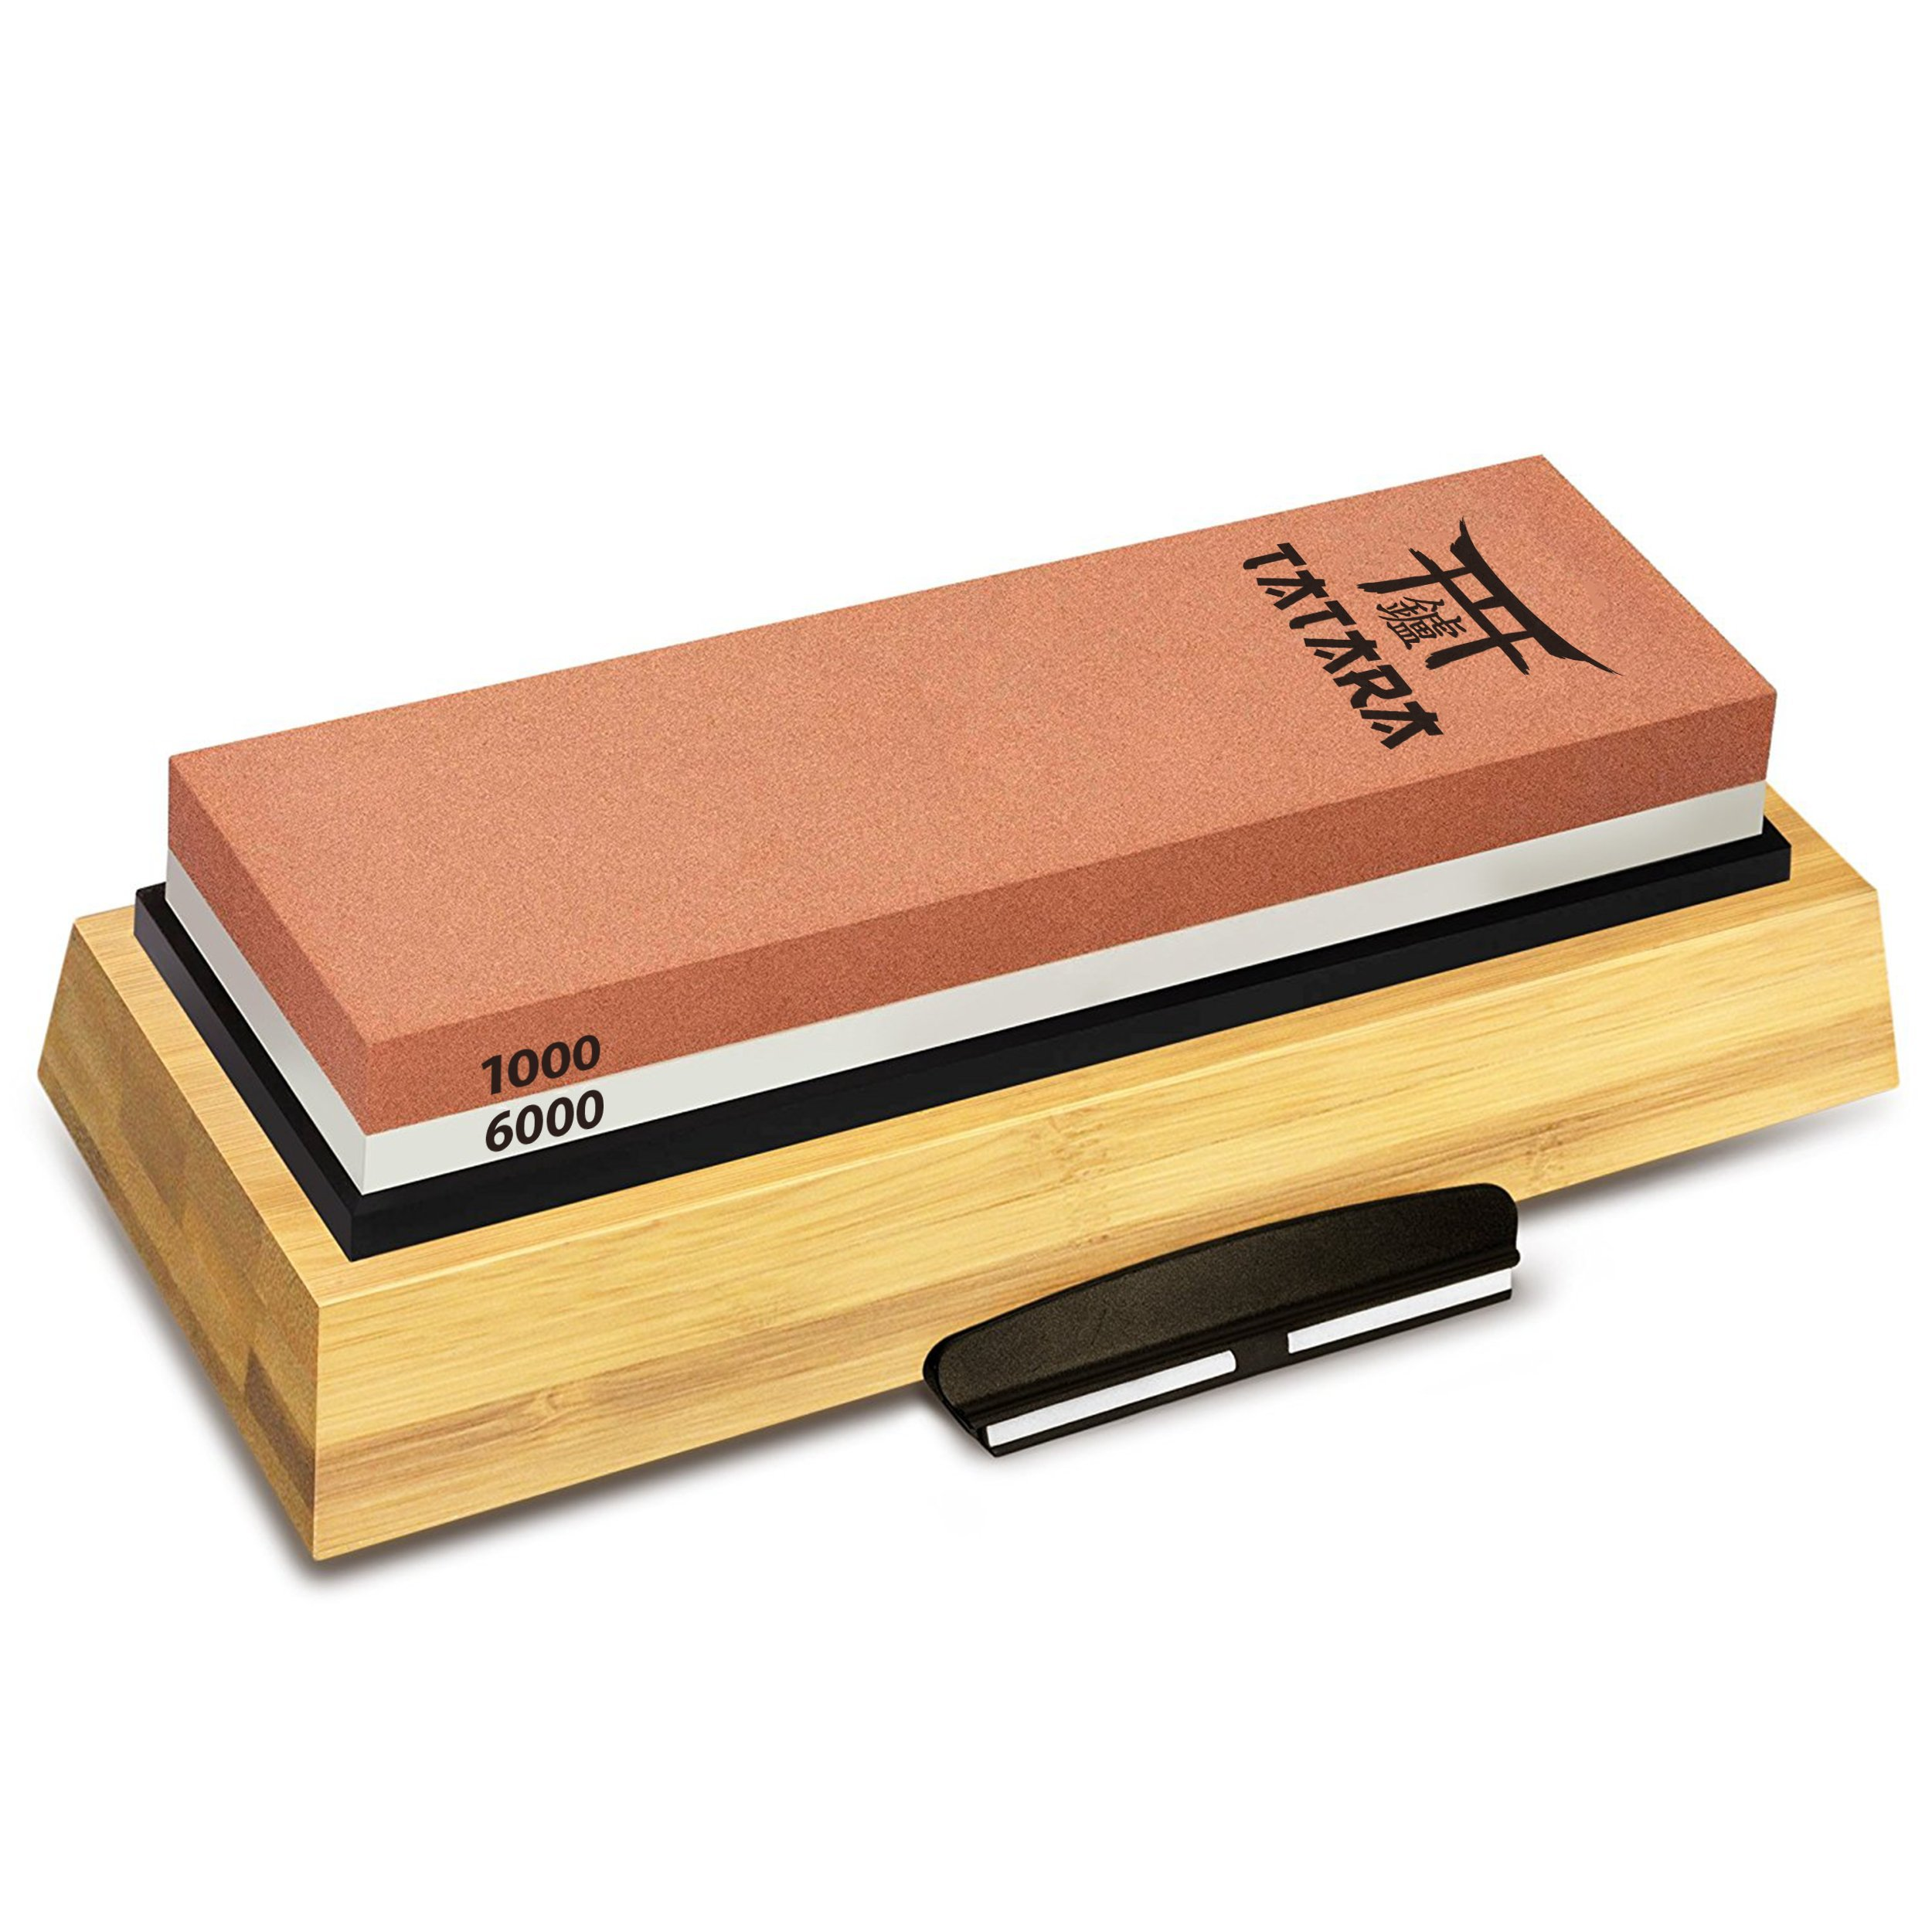 TATARA | Knife Sharpening Stone | Double Sided Japanese Blade Whetstone For Knives, Axes, Swords, Machetes and Hatchets | Non-Slip Bamboo Base, 1000/6000 Grit Waterstone With Free Honing Guide